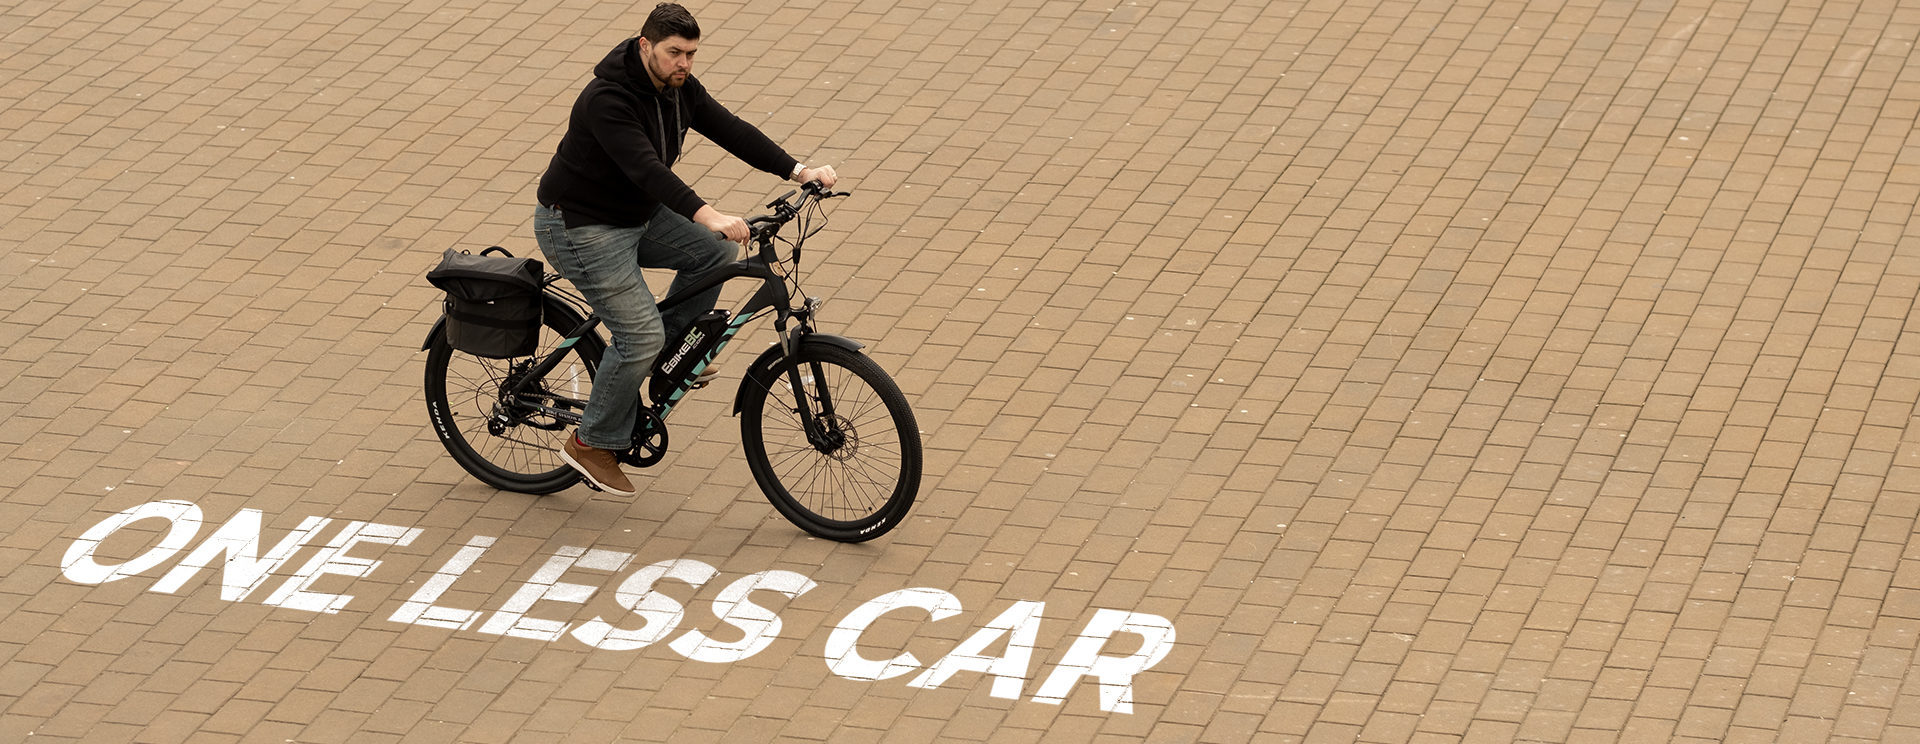 One Less Car, Less Pollution, More Bikes